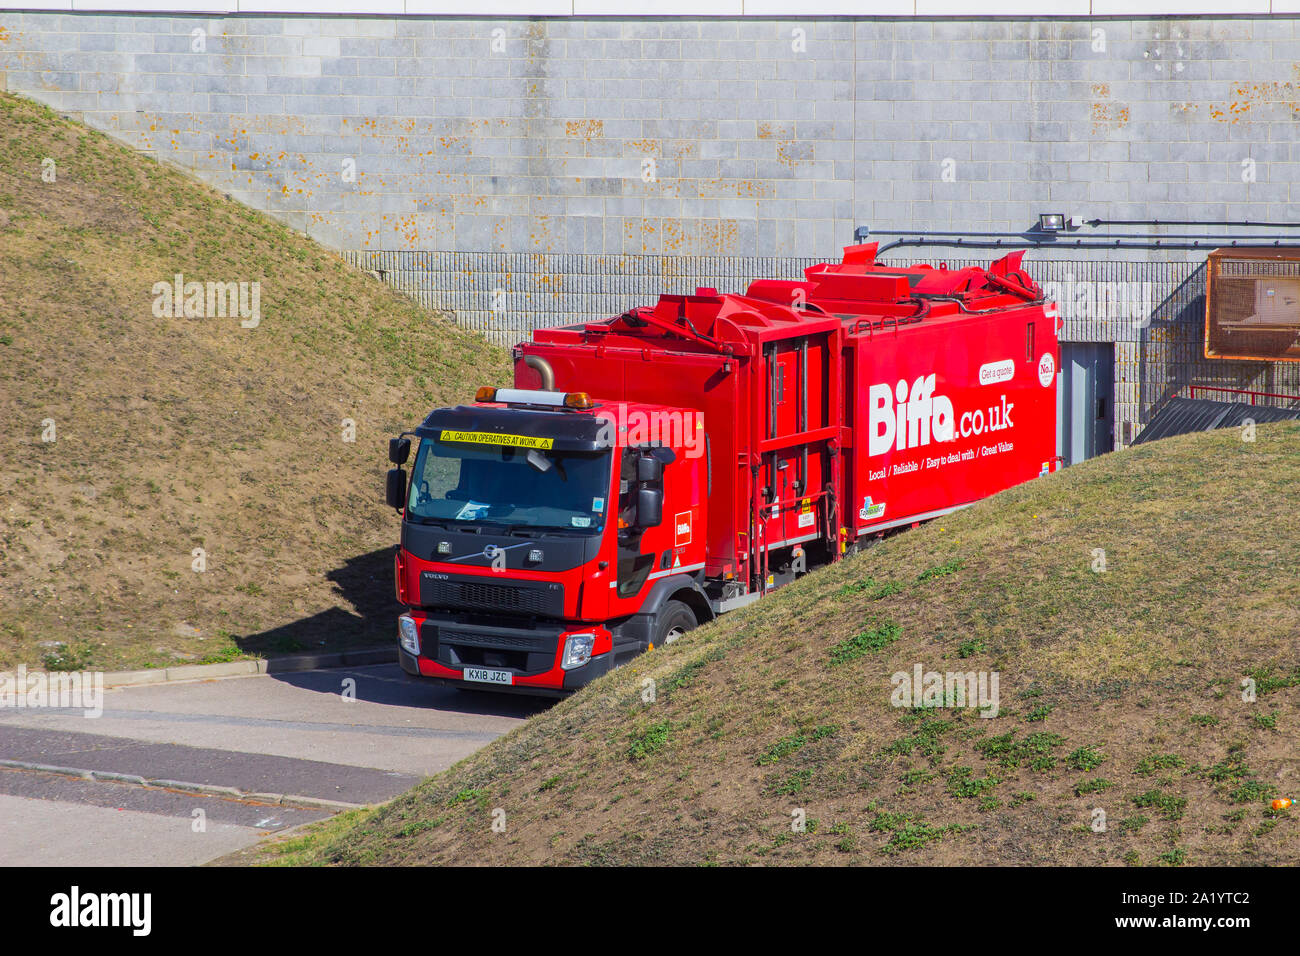 18 September 2019 A large Biffa Waste Disposal lorry at the rear service entrance to the Pyramids Centre facility in Portsmouth England Stock Photo